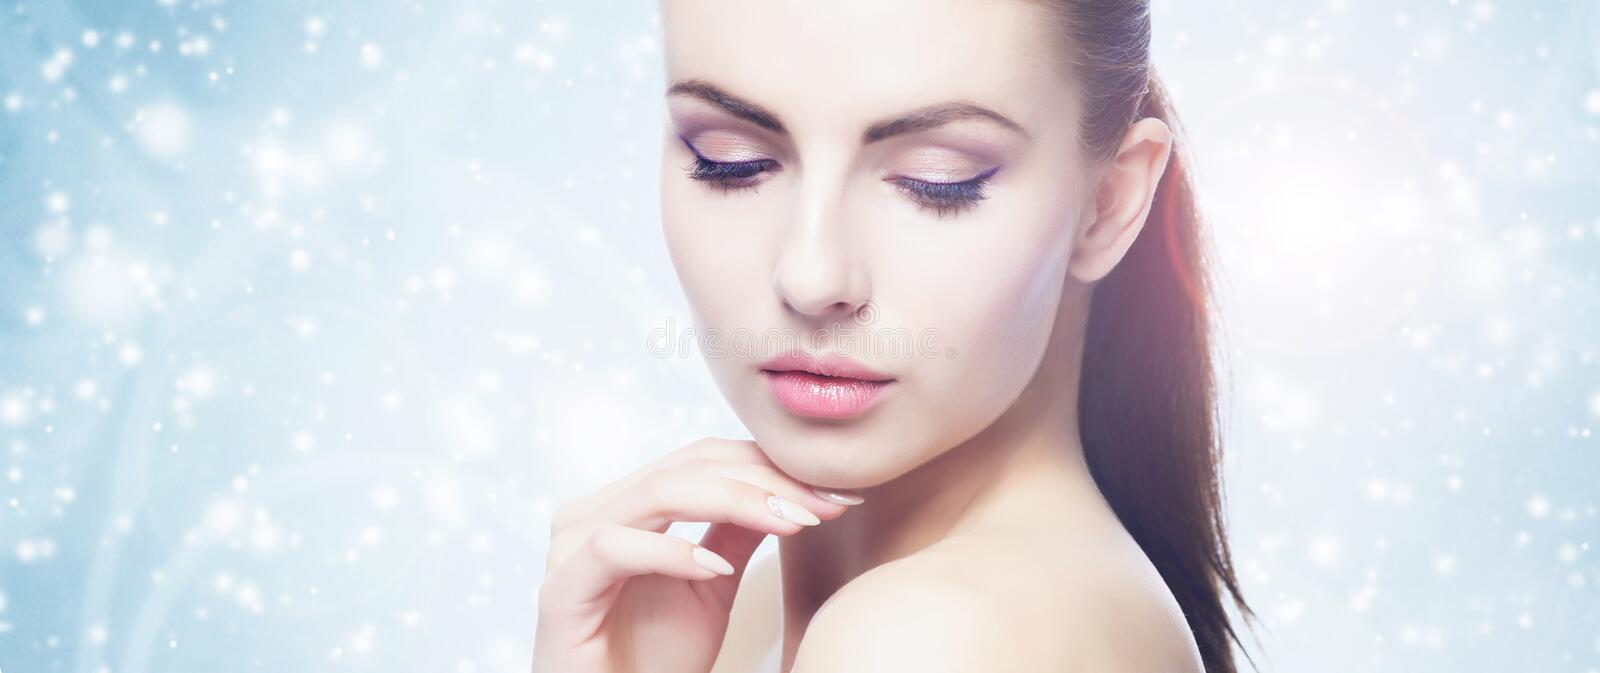 Portrait of young, beautiful and healthy woman: over winter background. Healthcare, spa, makeup and face lifting concept stock image